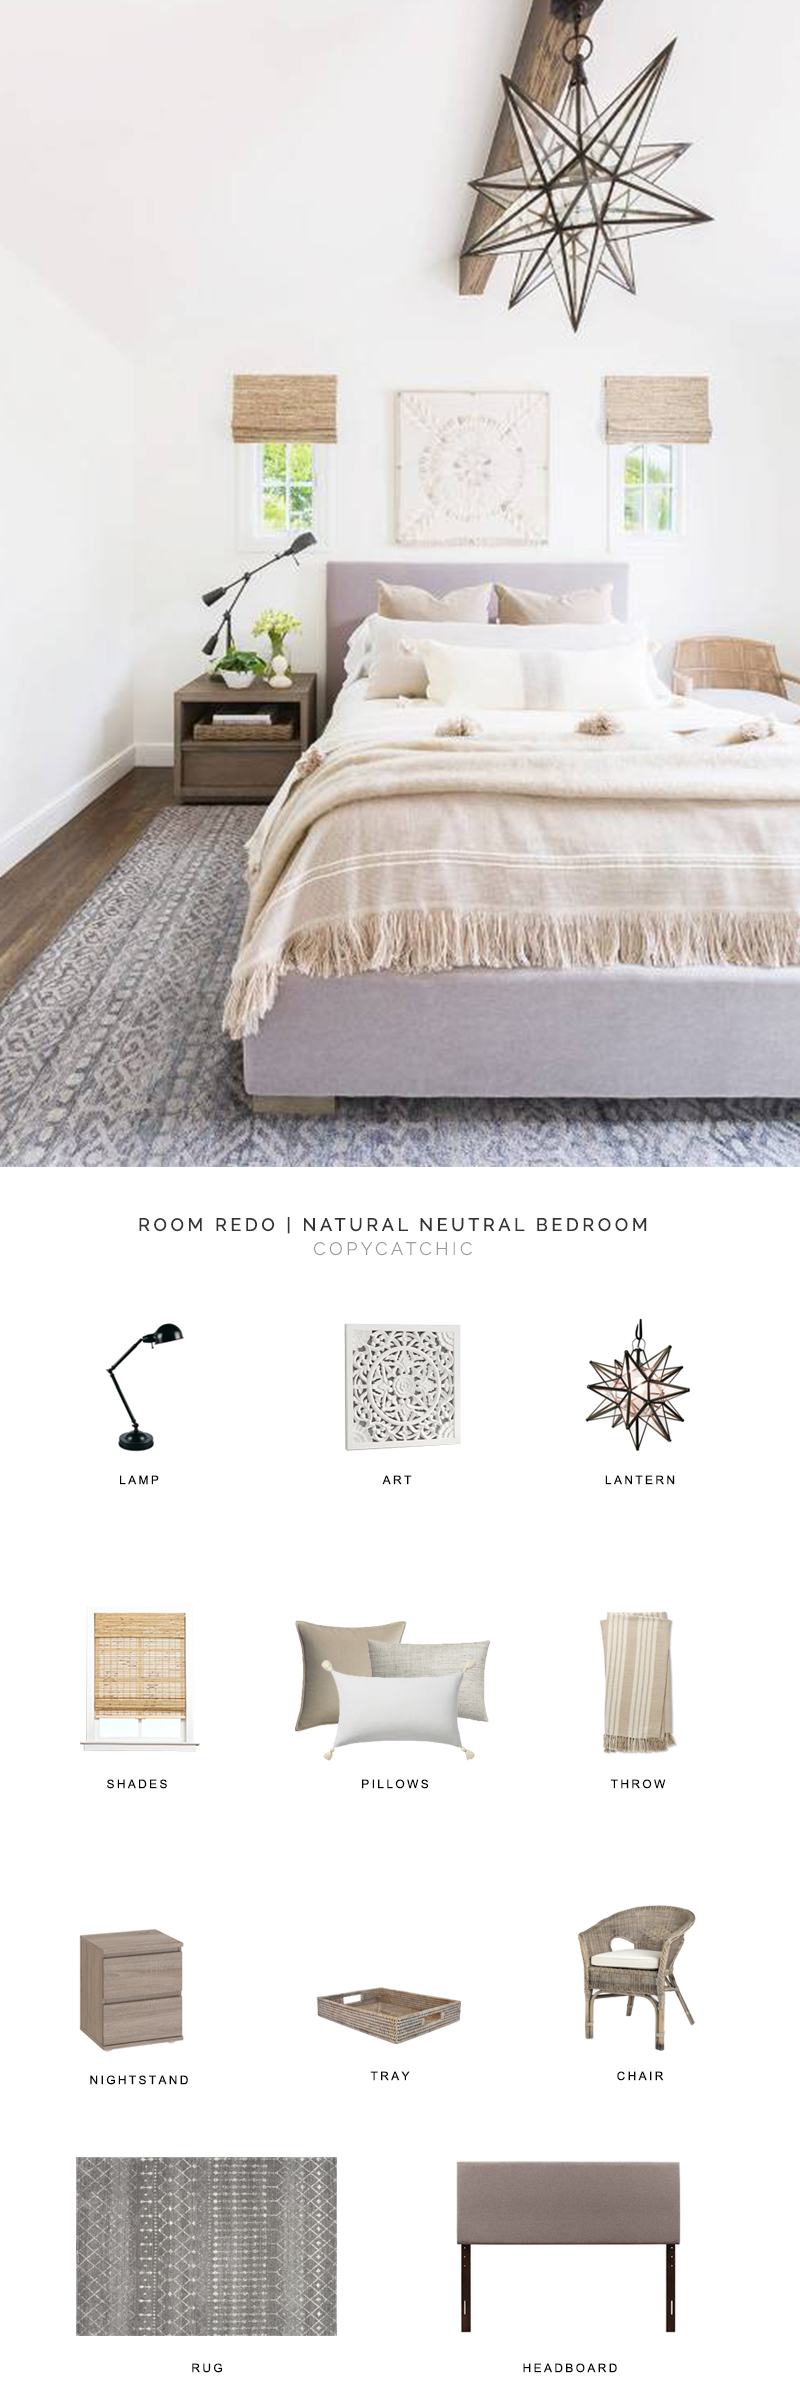 This neutral bedroom full of natural toned texture designed by Amanda Barnes and photographed by Alyssa Rosenheck is recreated for less by copycatchic luxe living for less budget home decor and design daily finds and room redos